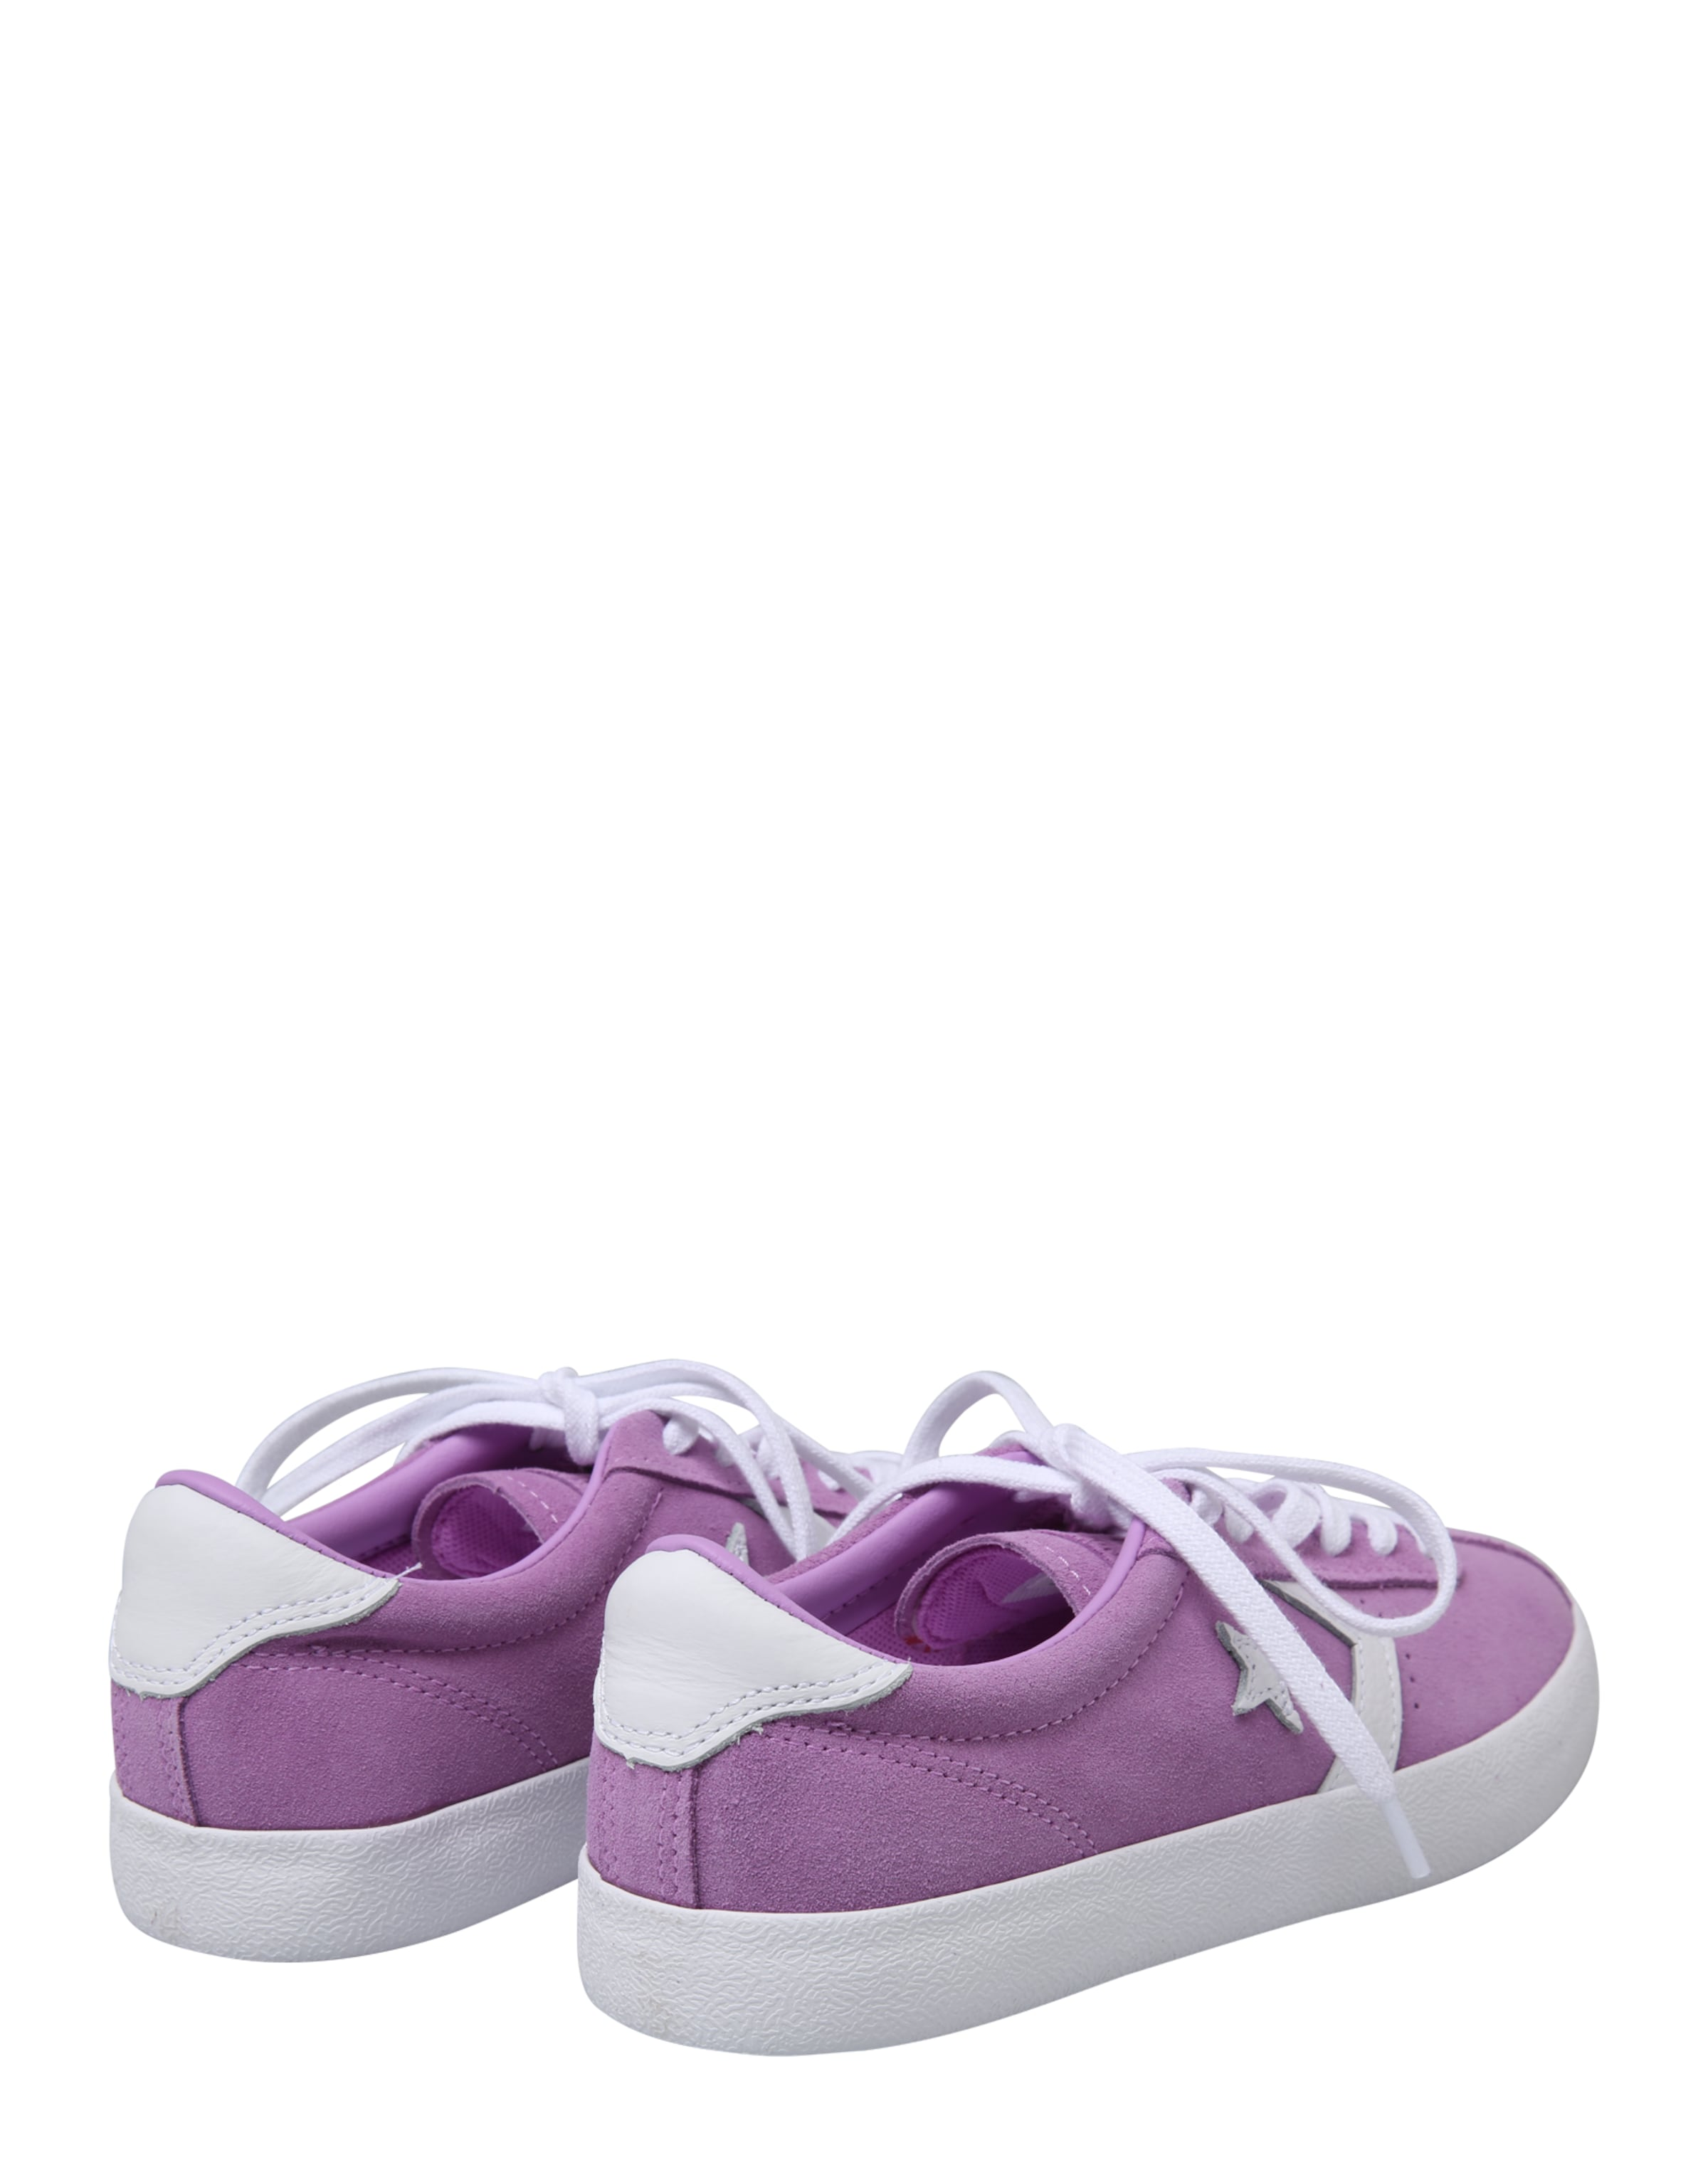 'breakpoint' Sneakers Sneakers Converse LilaWeiß 'breakpoint' In Converse I9HED2